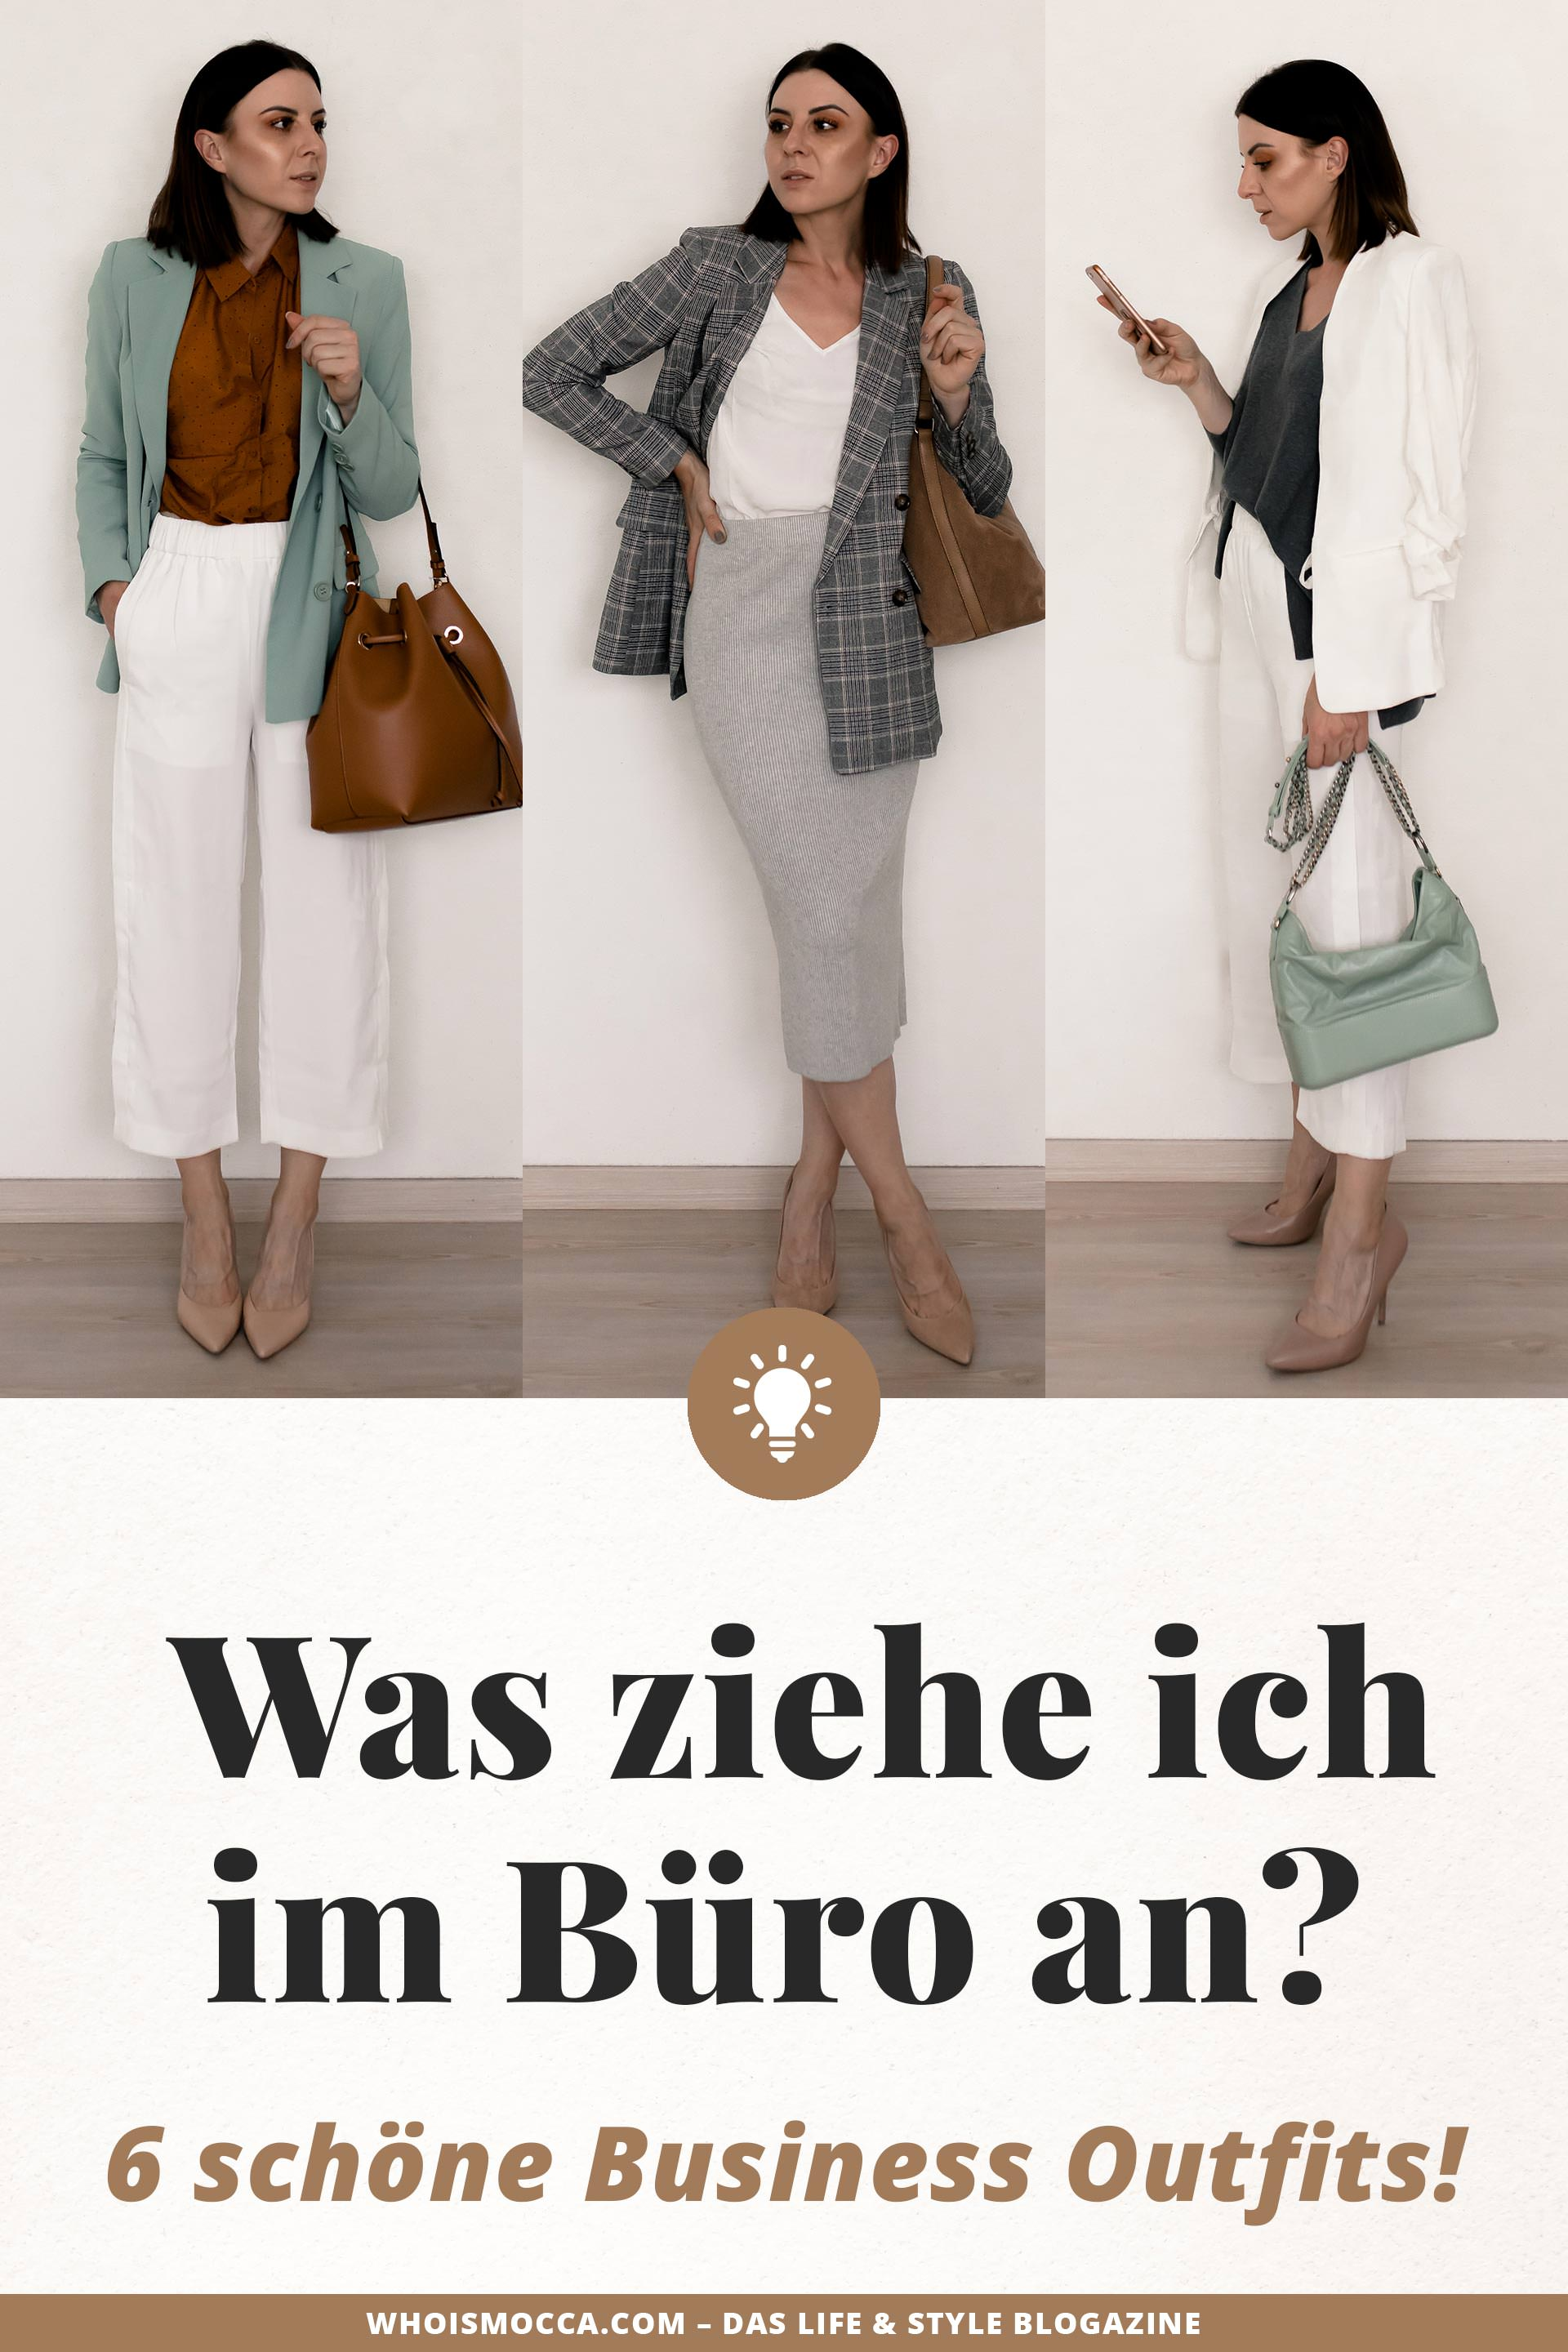 enthält unbeauftragte Werbung. Was ziehe ich im Büro an, Büro Outfits, Business Looks, Business Outfits, Business Outfits für Frauen, Lookbook Outfits, Outfit Ideen fürs Büro, Was ziehe ich morgen im Büro an, Office Outfits Blog, Modeblog, Styling Tipps, www.whoismocca.com #businessoutfit #lookbook #fashiondiary #closetdiary #alltagsoutfits #officelook #business #entrepreneur #karriere